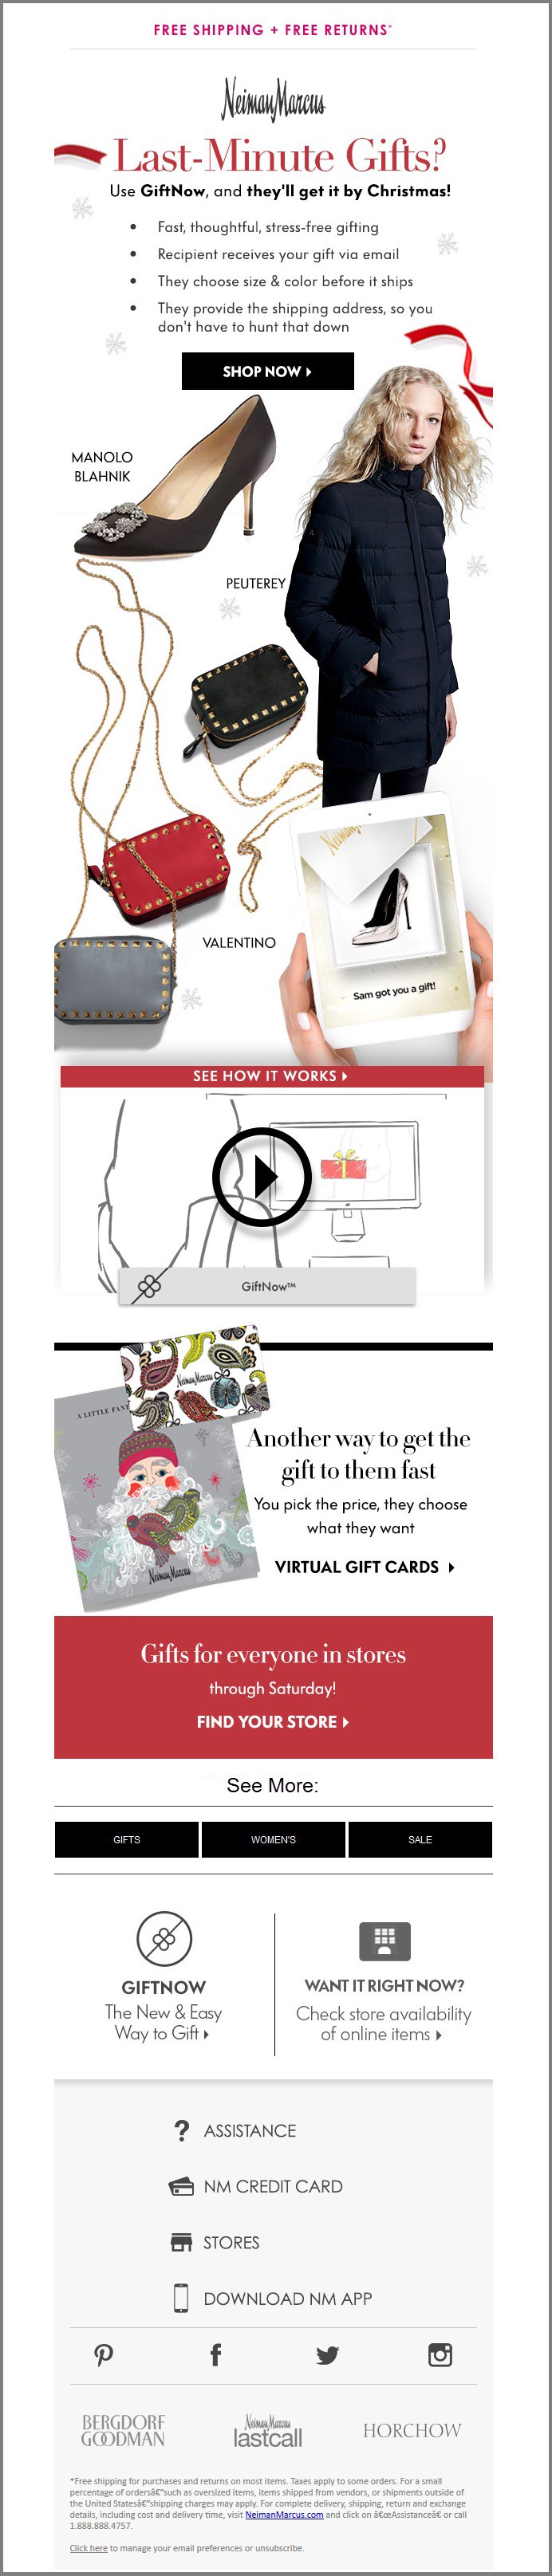 holiday-email-marketing-examples